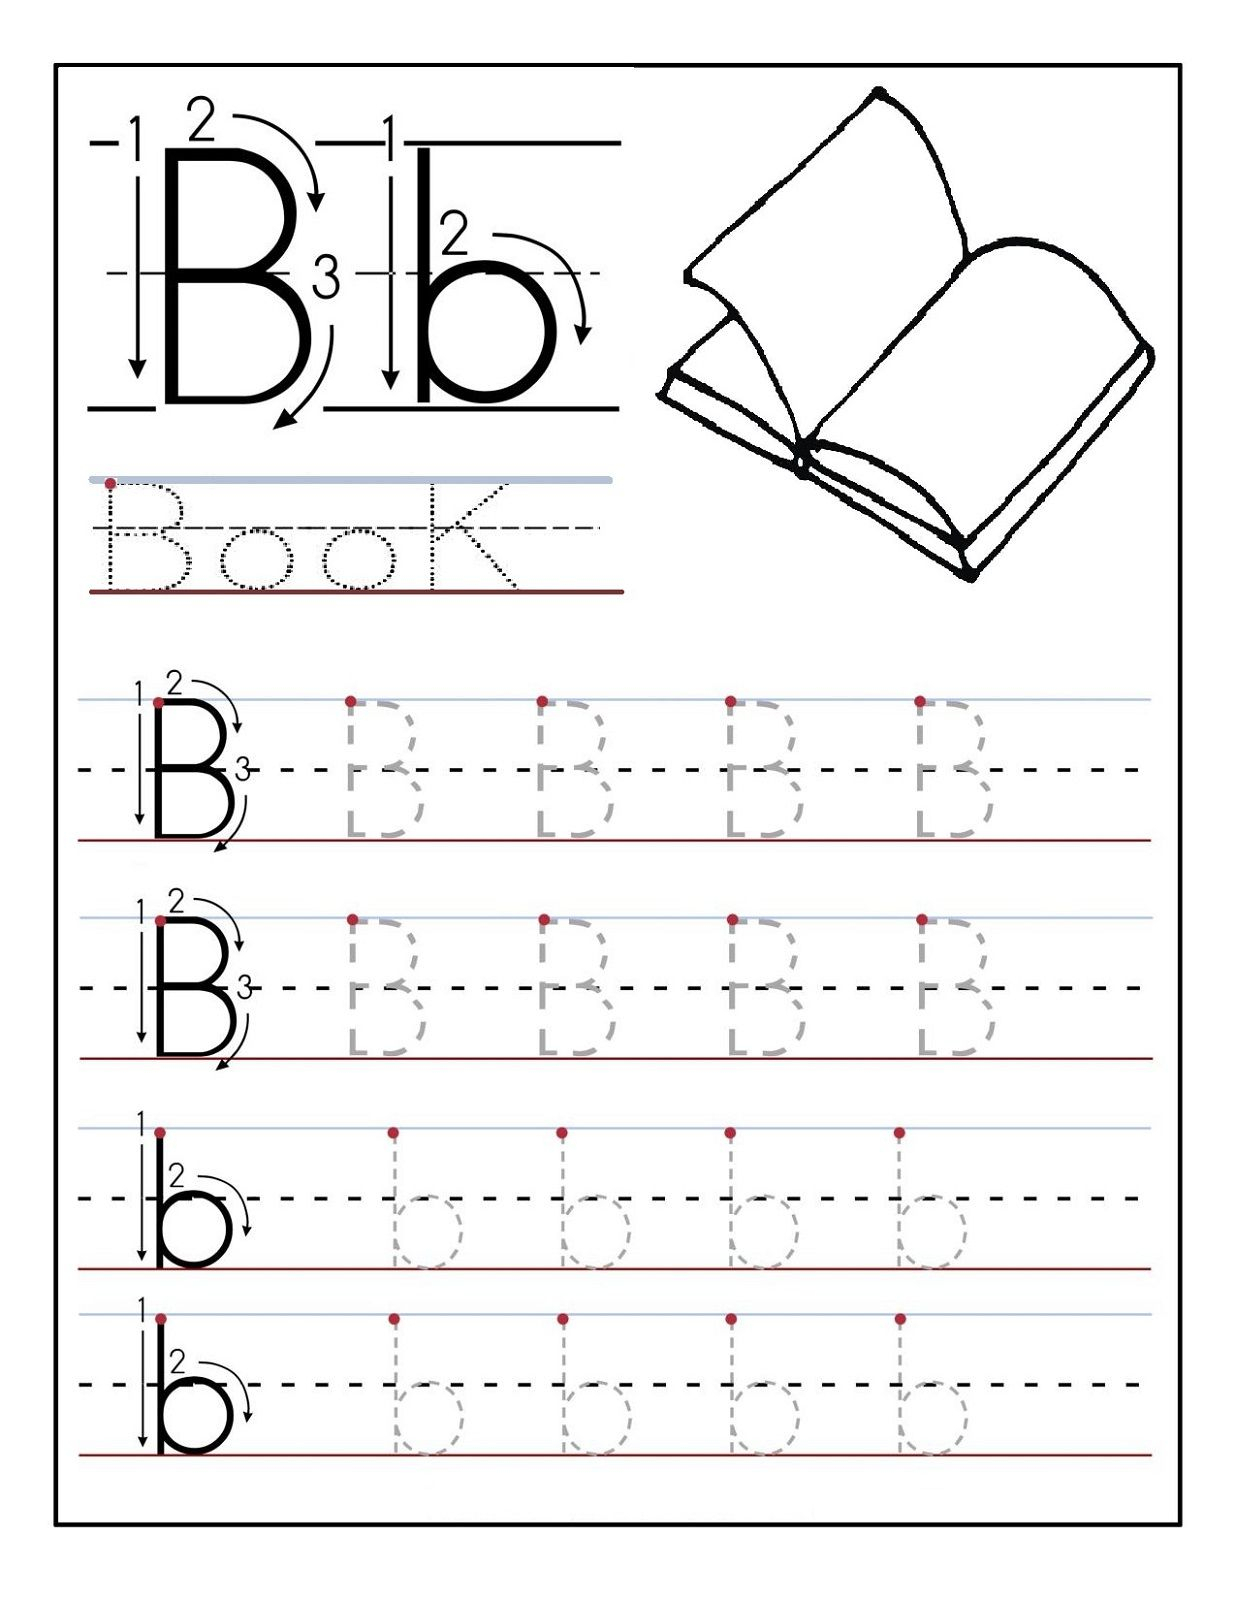 Traceable Letters Worksheet For Children Golden Age intended for Preschool Dotted Letters For Tracing